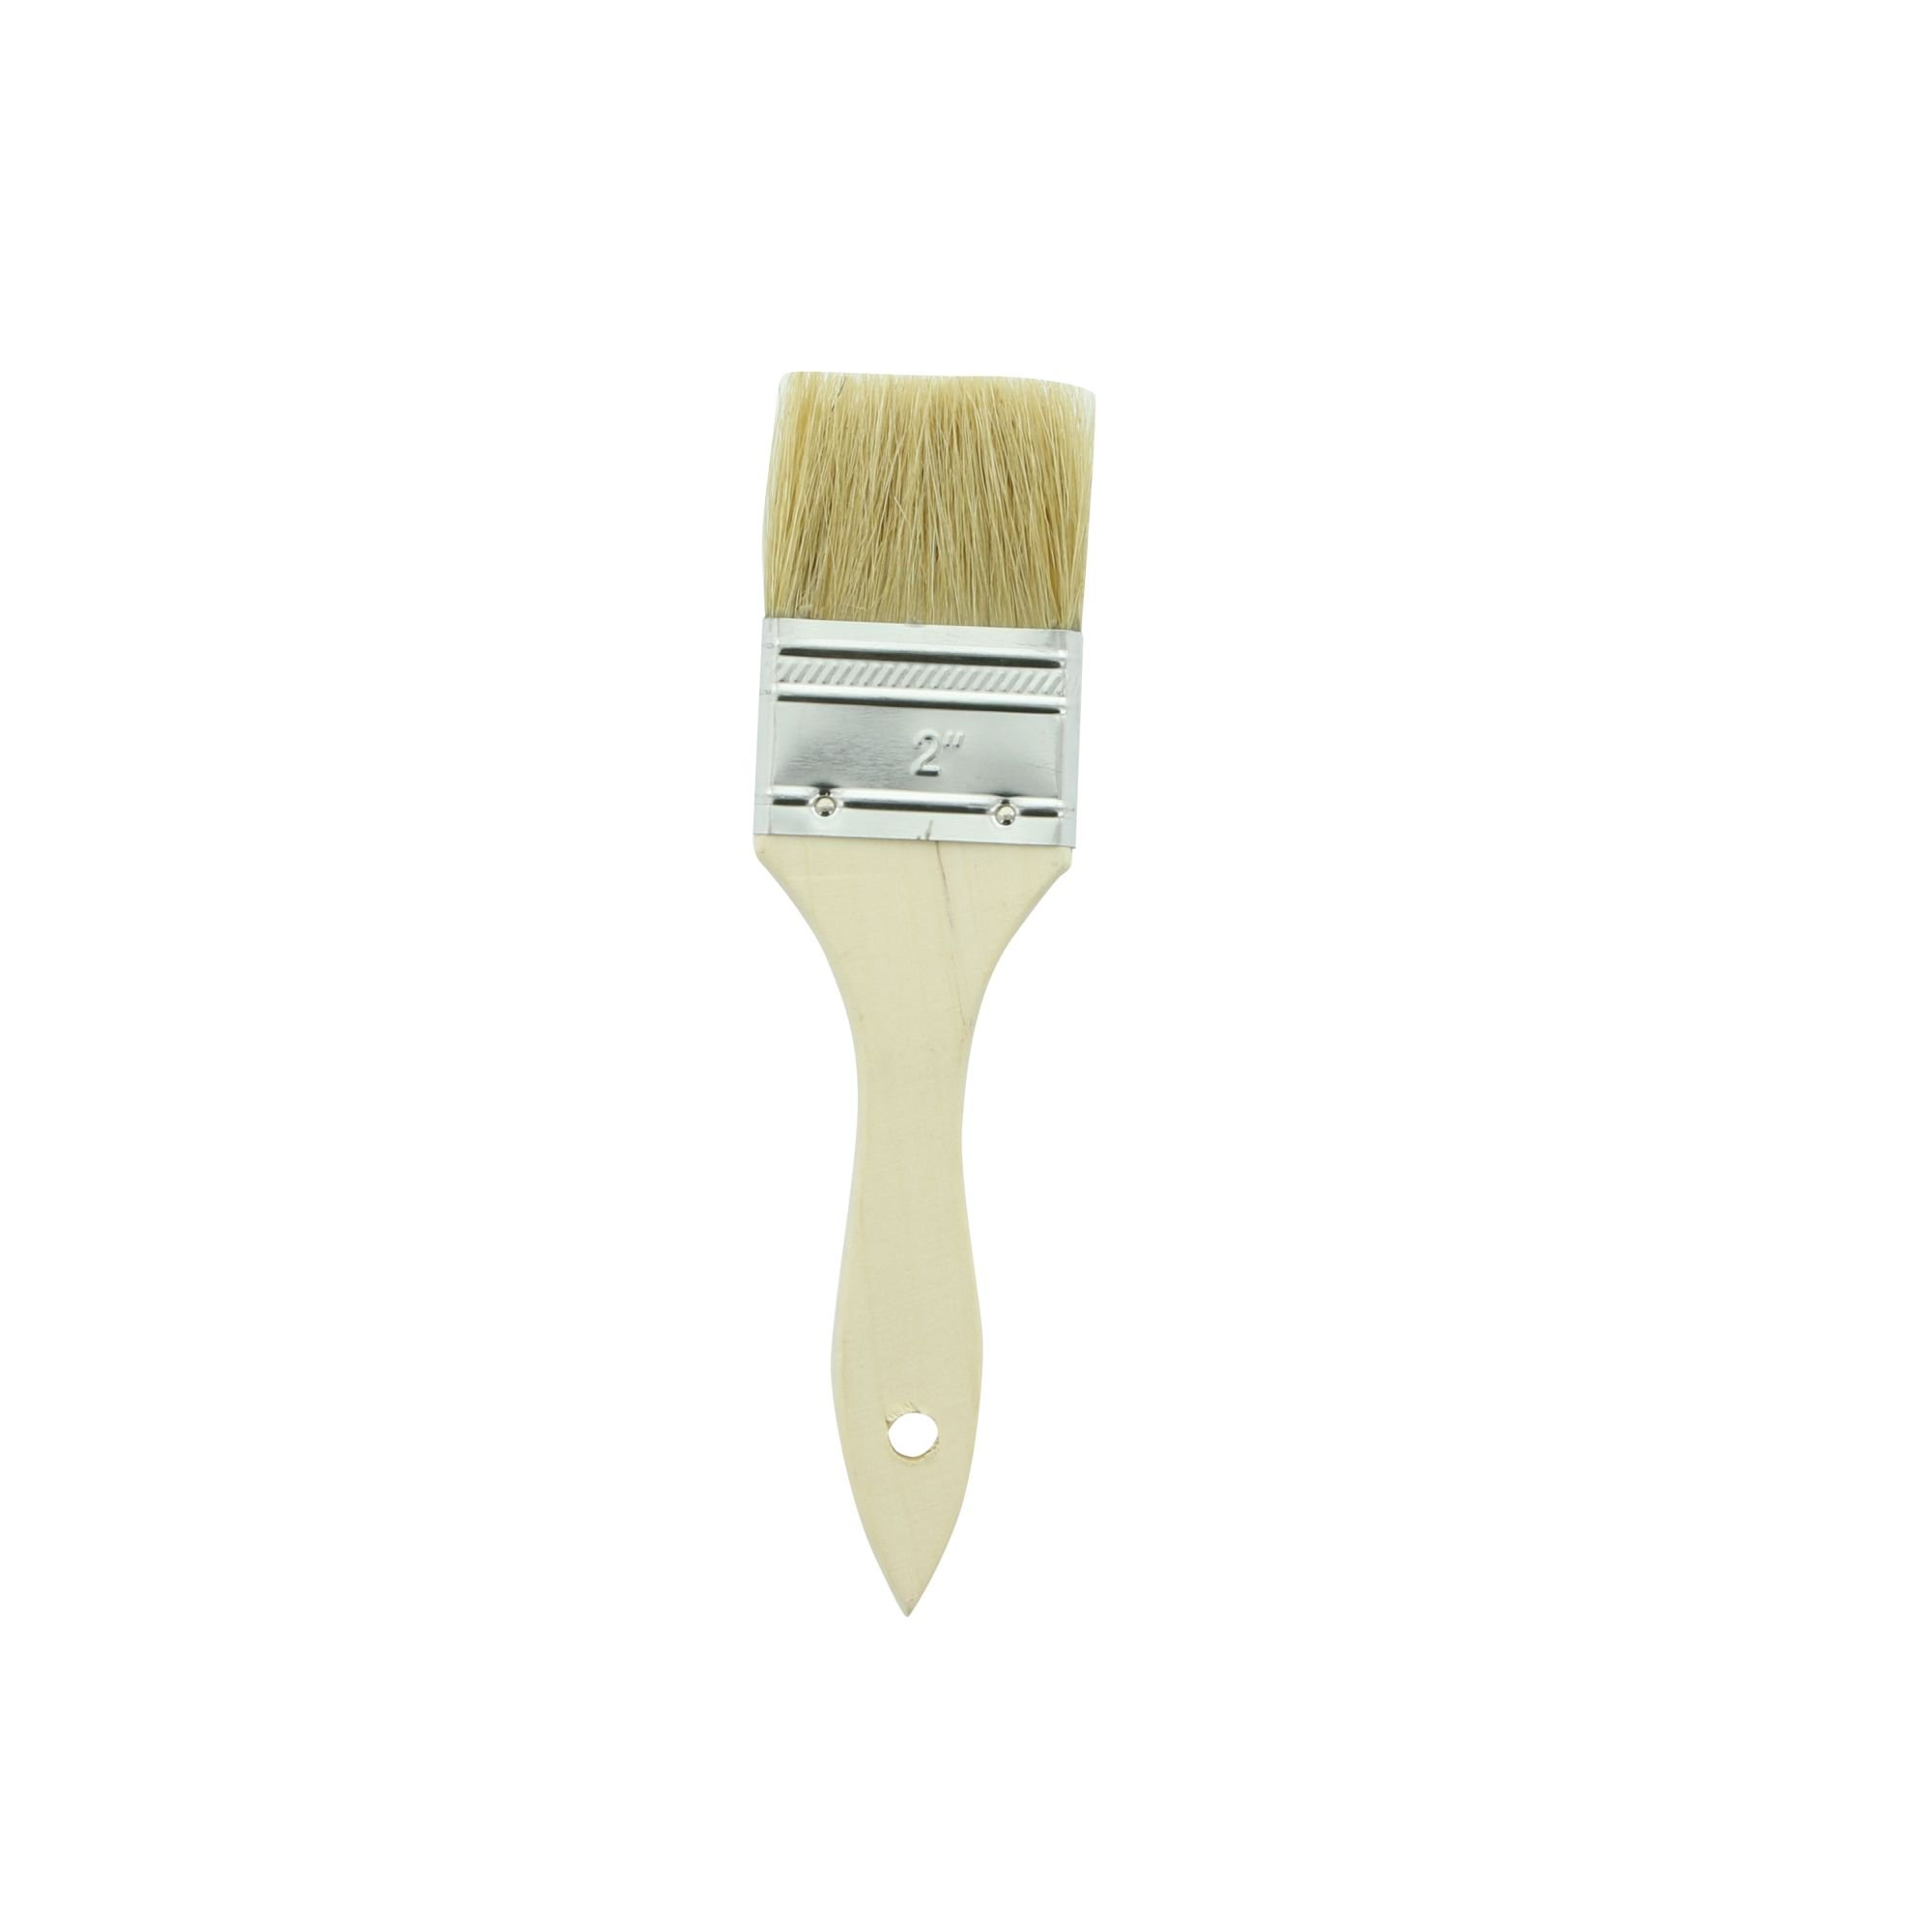 GAM 2'' Single X Thick Chip Brush